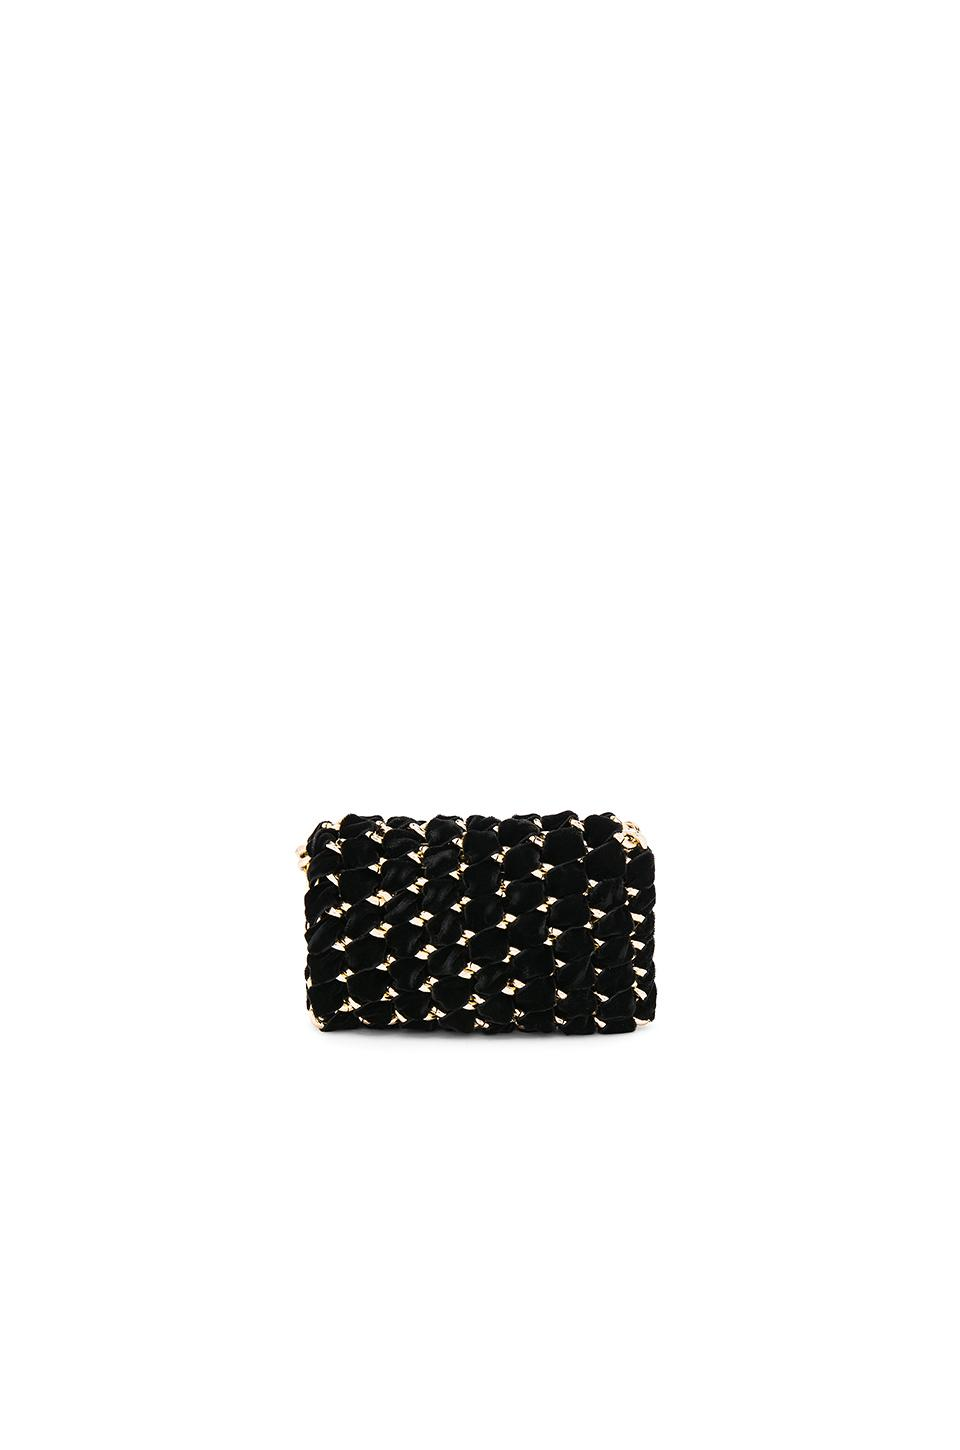 b4caa223cfc Lyst - TAMBONITA Micro Eve Velvet Clutch With Gold Chain in Black